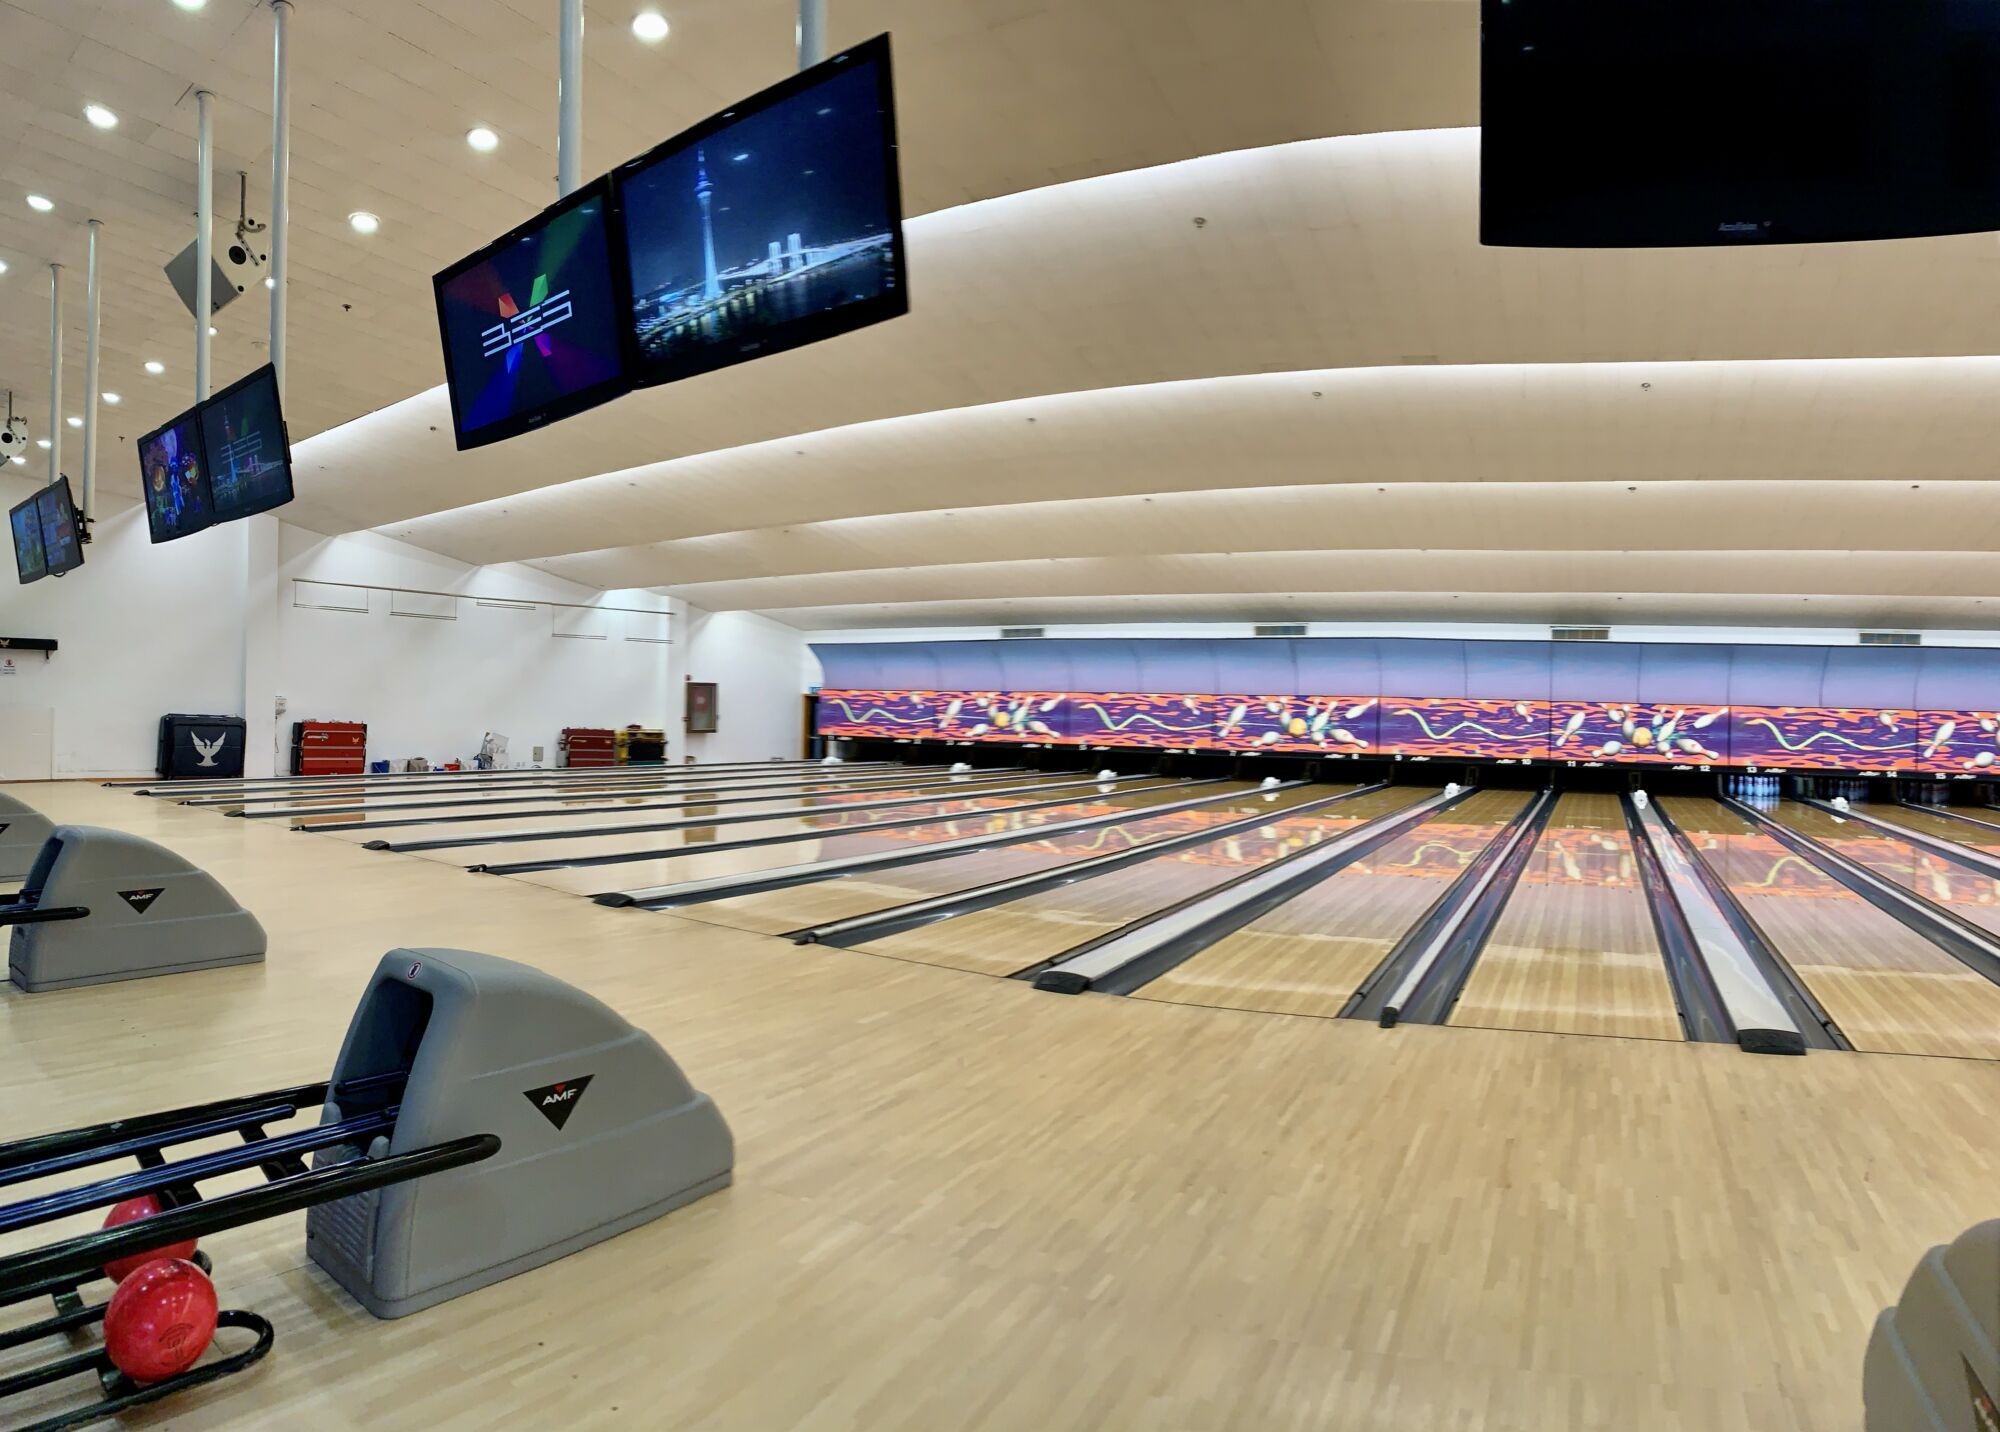 Macau East Asian Games Dome Bowling Alley Macau Lifestyle Macau Lifestyle